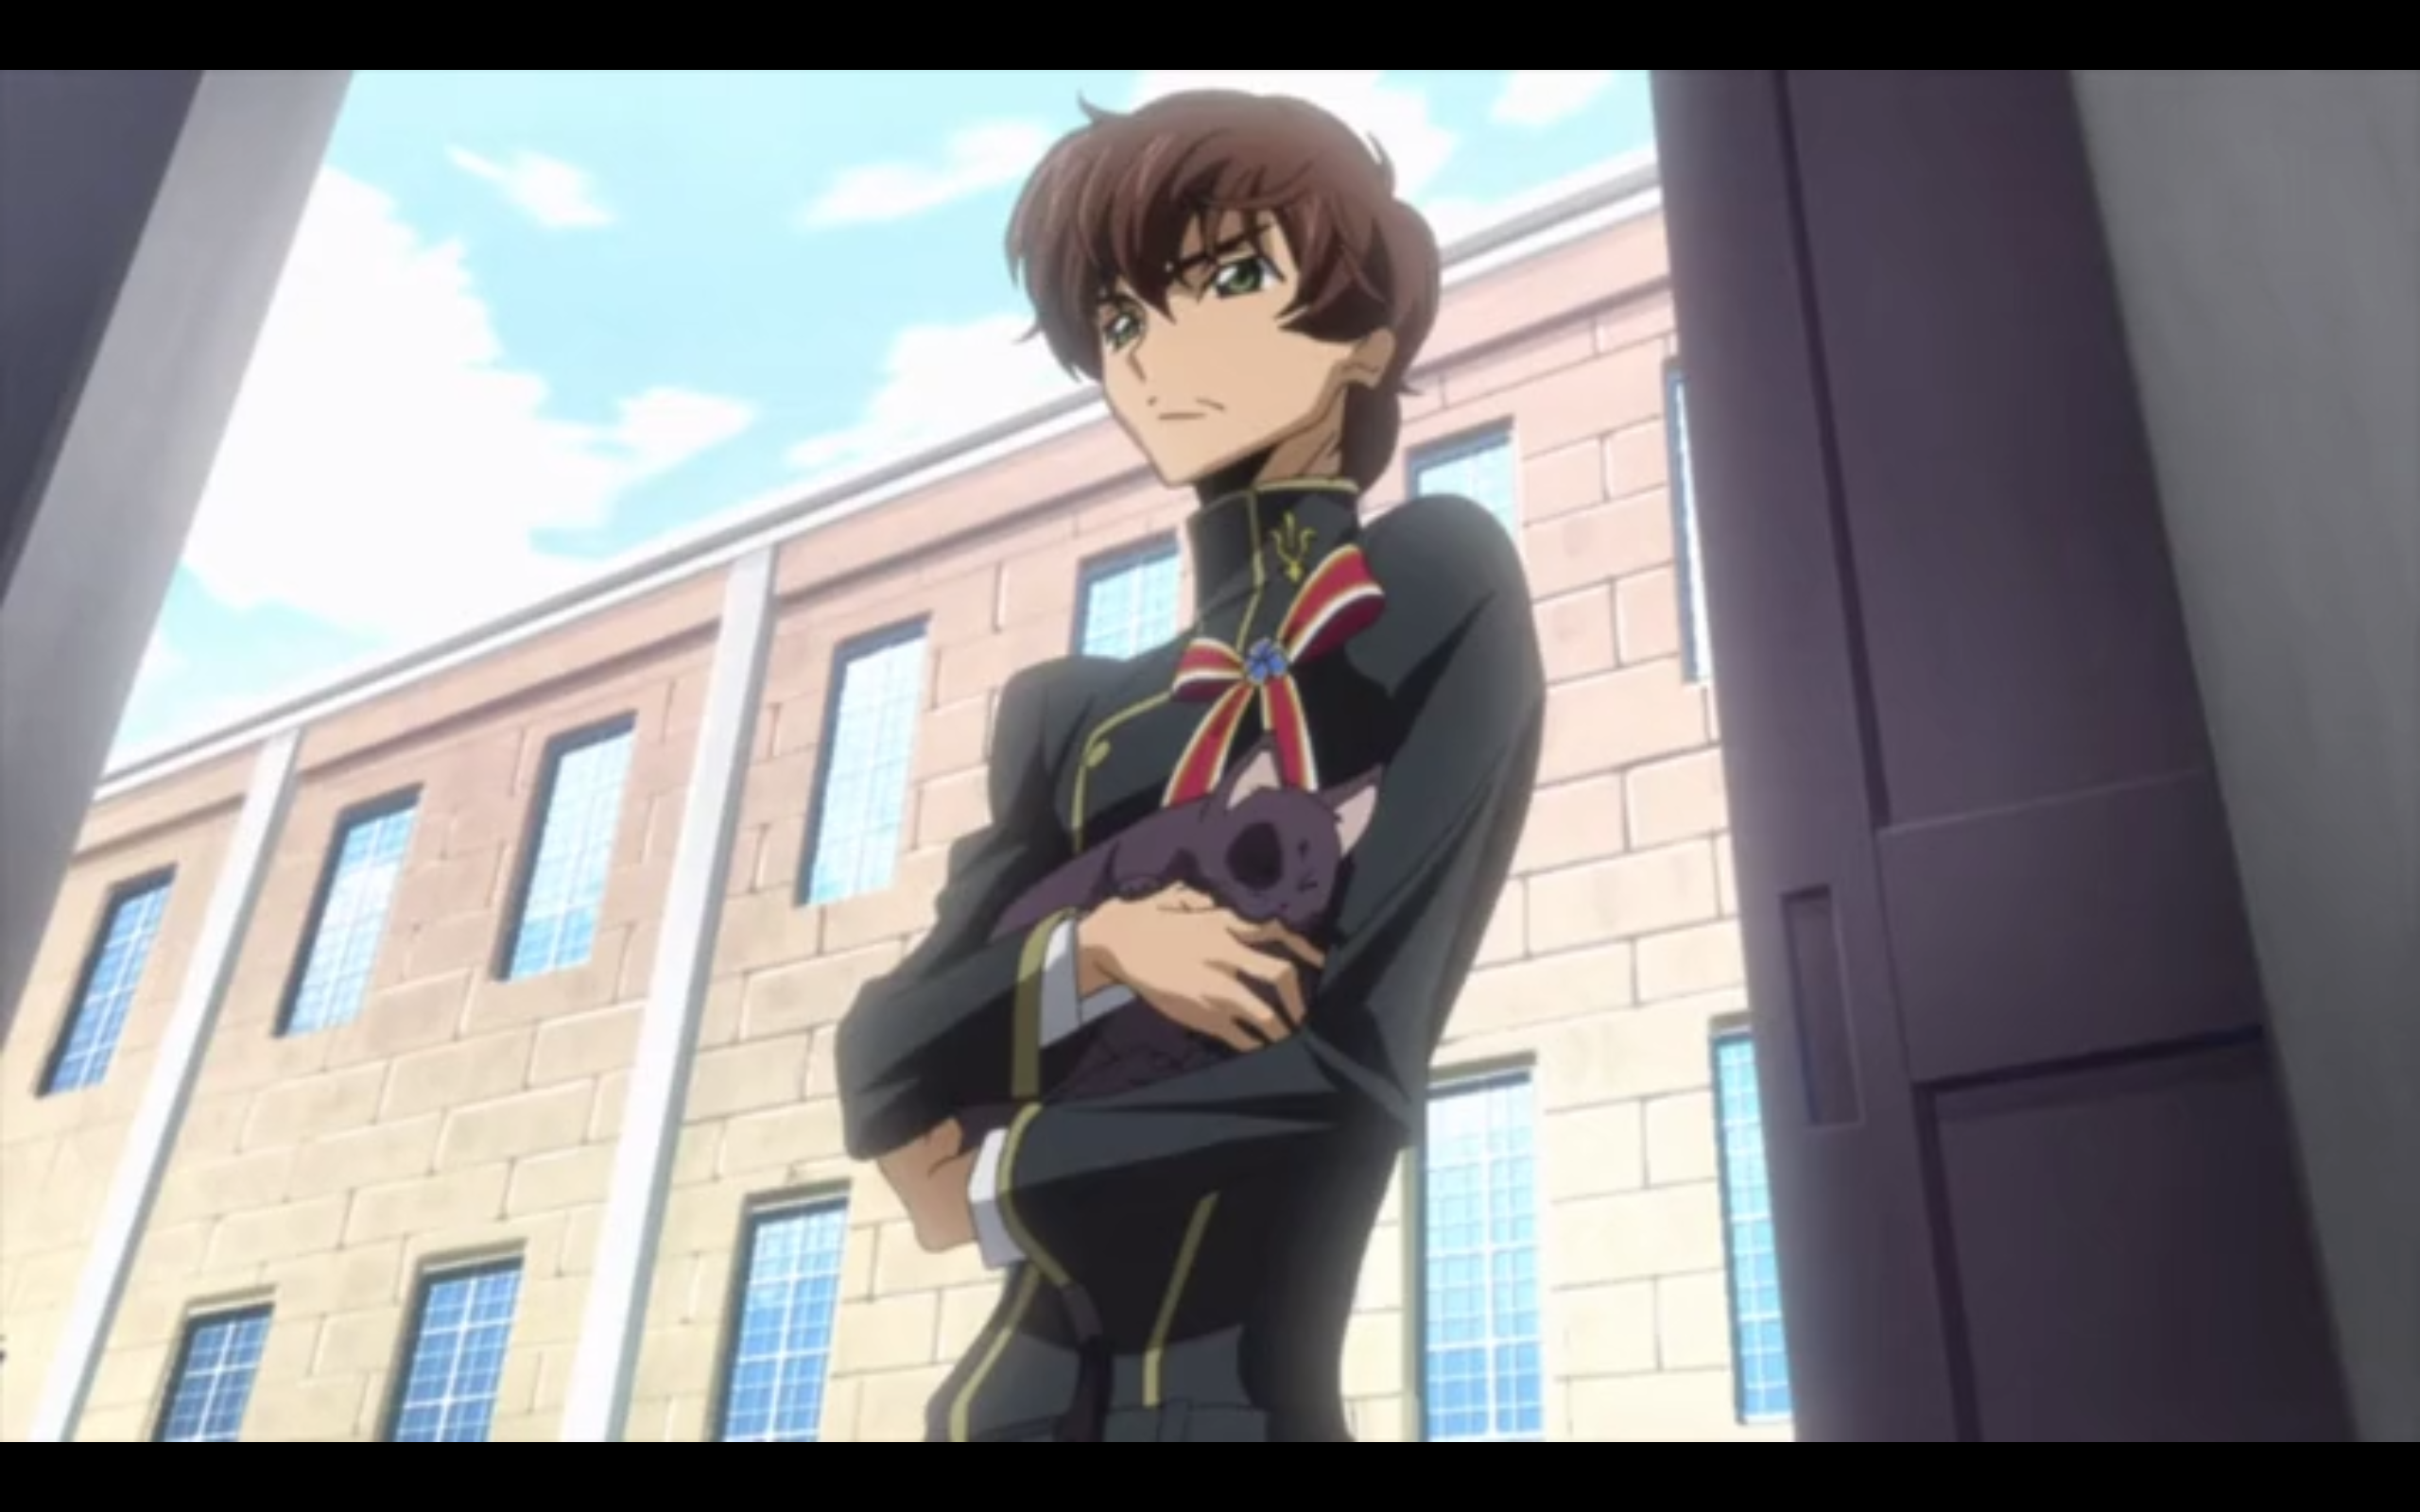 Episode Focus: Code Geass R2 episode 5, Knights of the Round